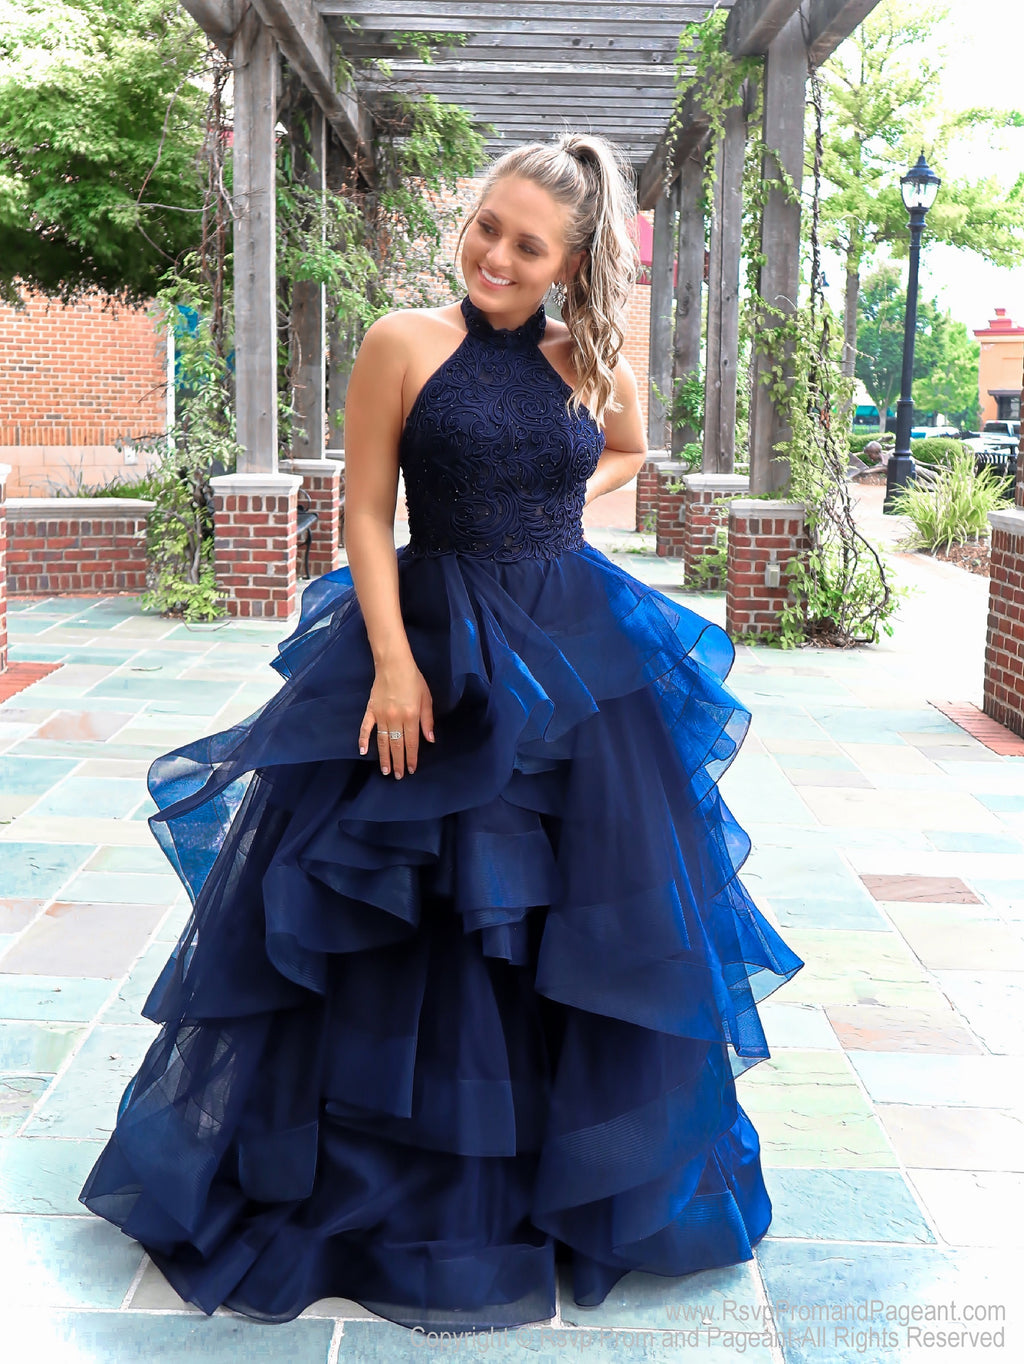 Model in this gorgeous navy gown! The bodice is beautifully embroidered and features a halter top. And it's at Rsvp Prom and Pageant, your source for the Hottest Prom and Pageant Dresses and exclusive evening gowns and located in Atlanta, Georgia!